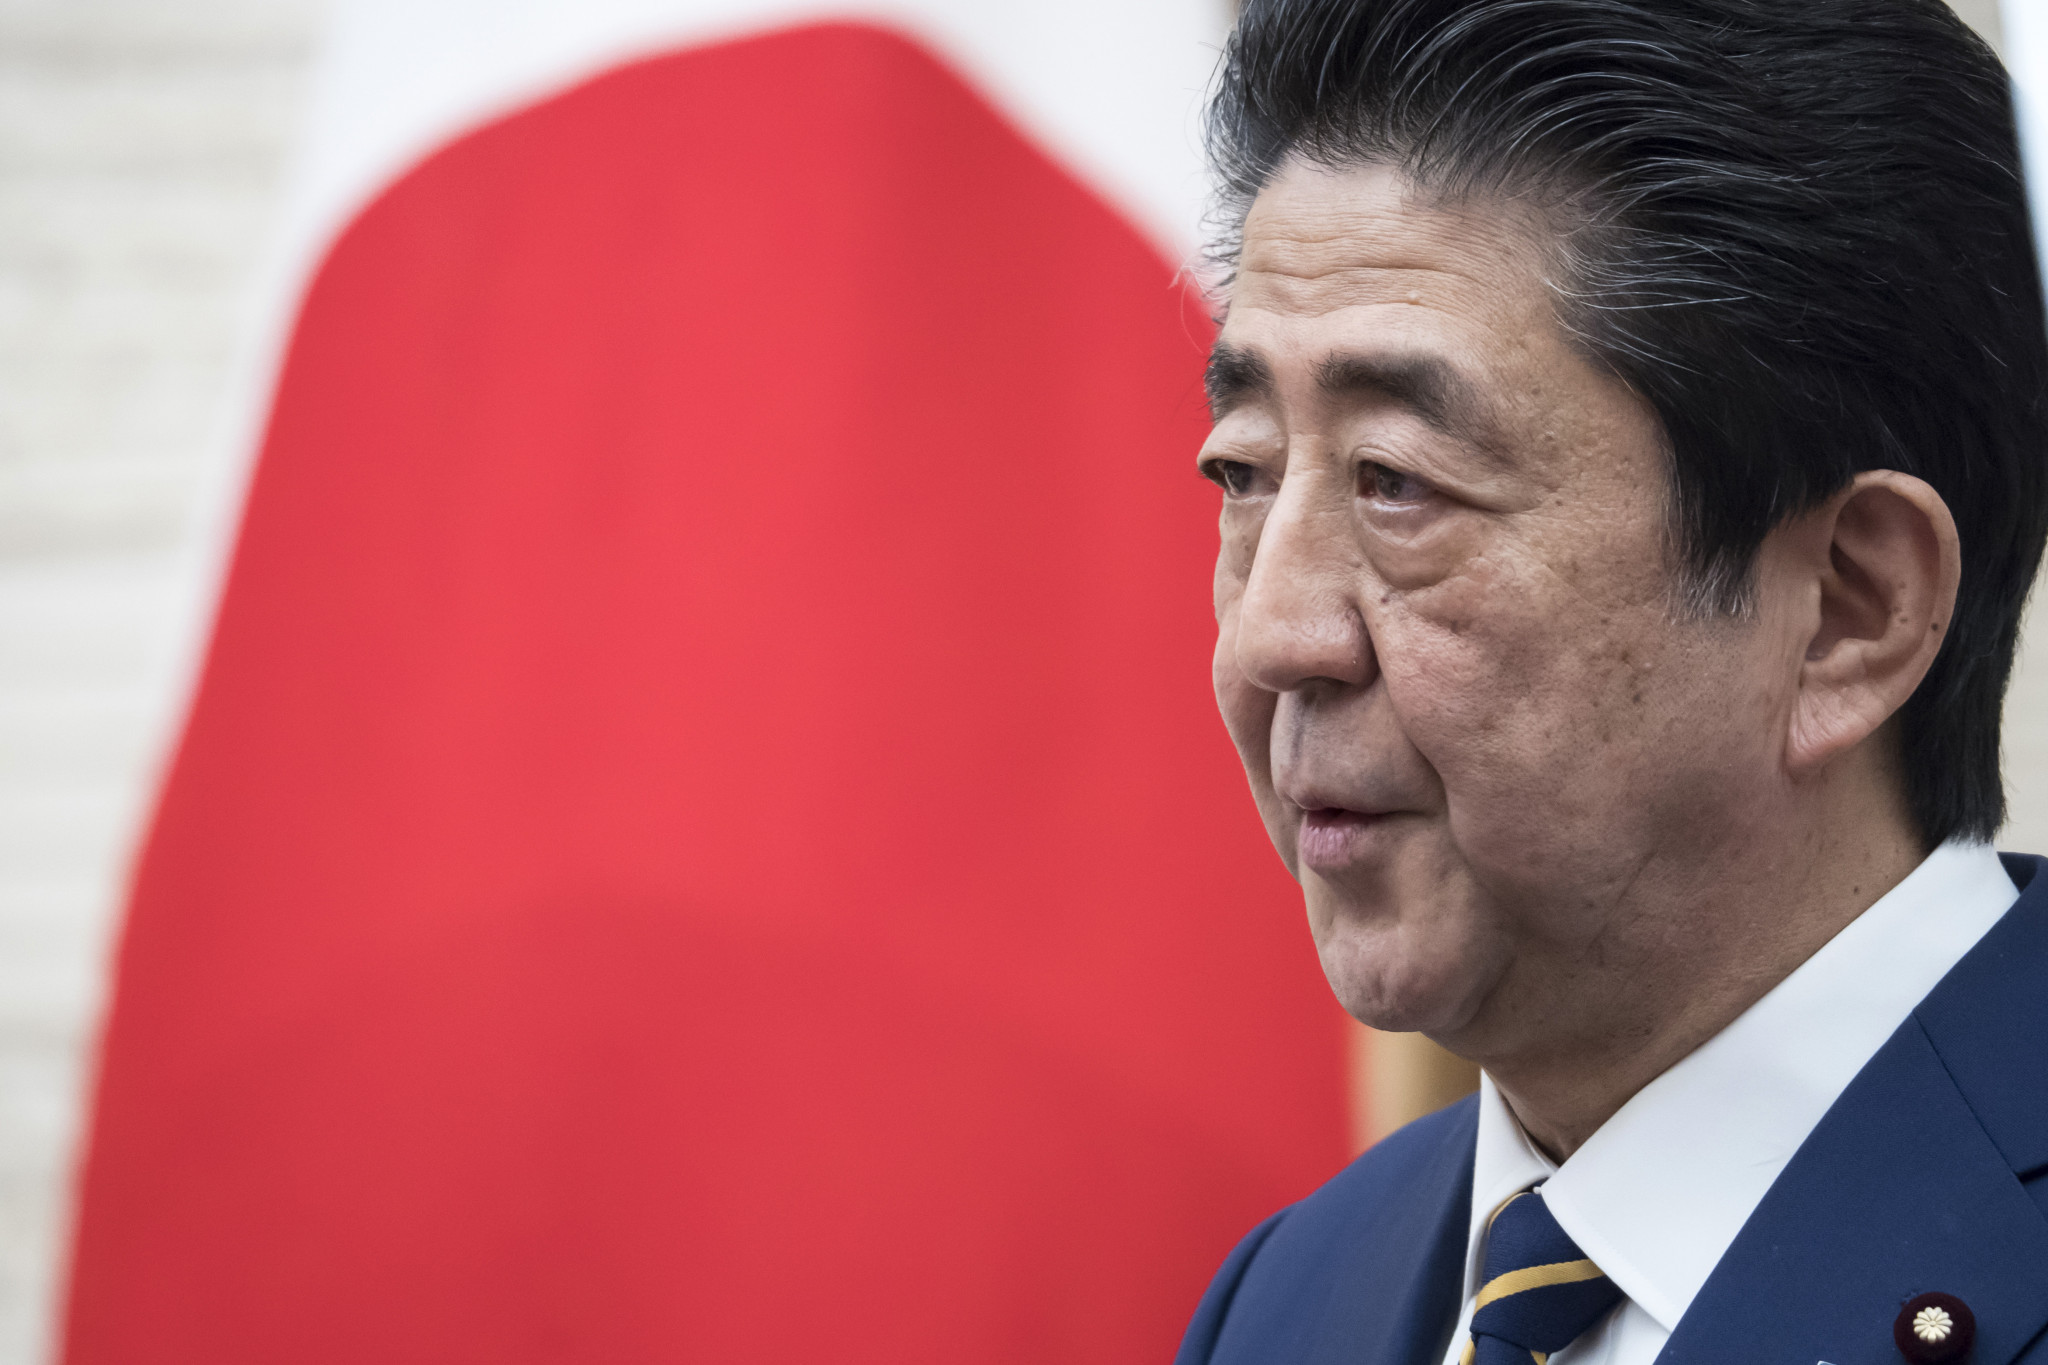 Shinzō Abe has declared a state of emergency ©Getty Images